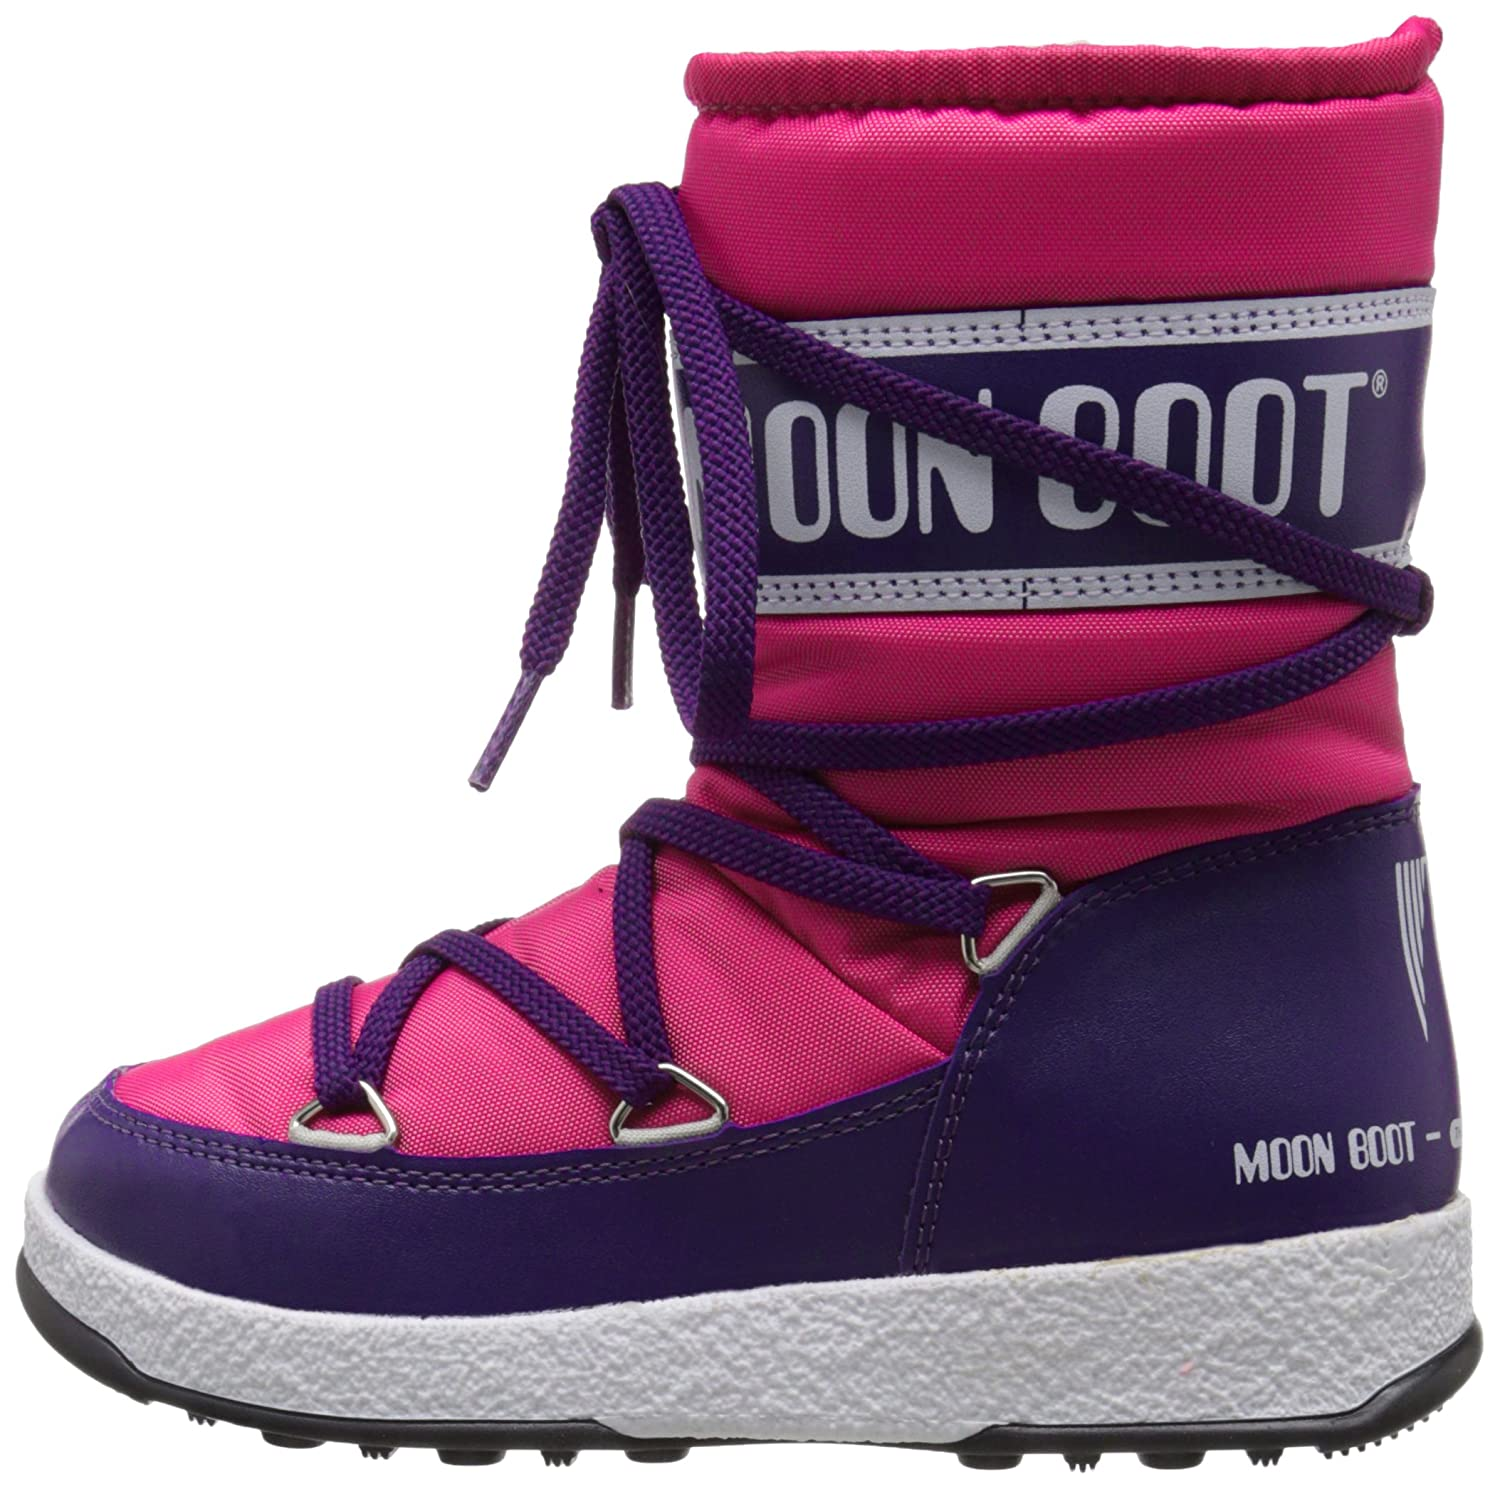 K Moon Boot We Sport JR Winter Fashion Boots MOON BOOT WE SPORT JR